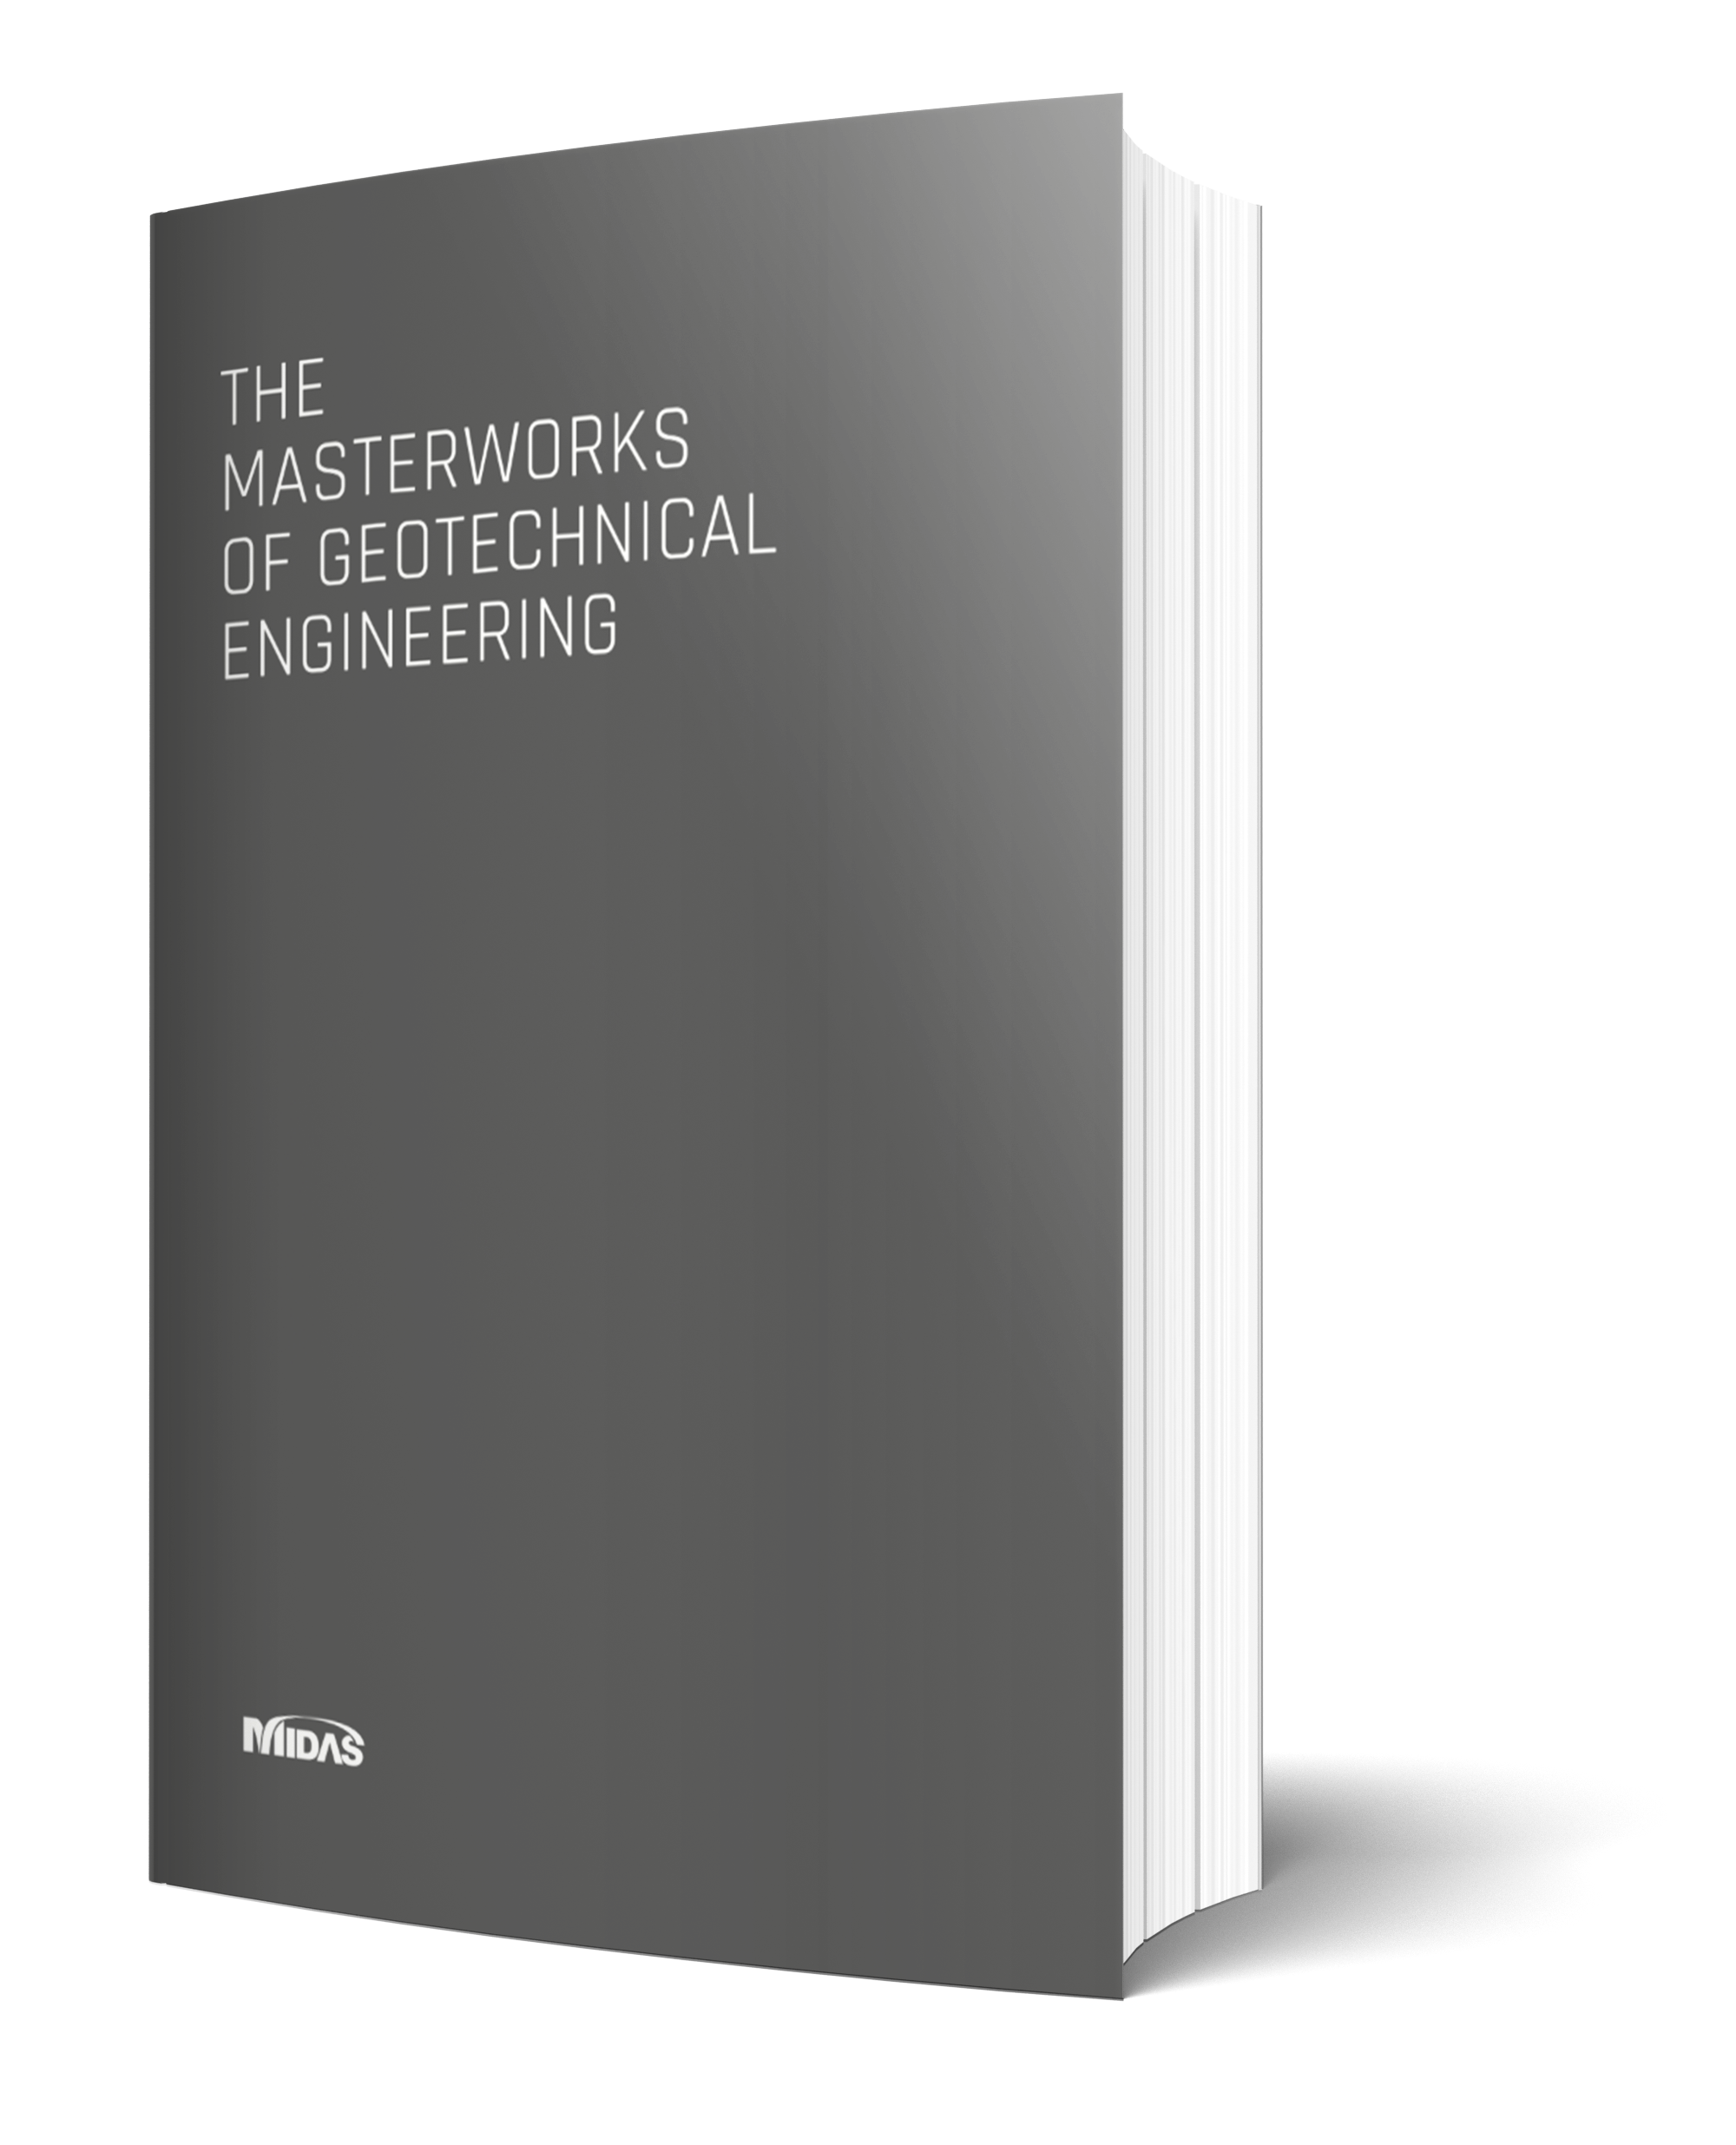 geotechnical_book_mockup.png